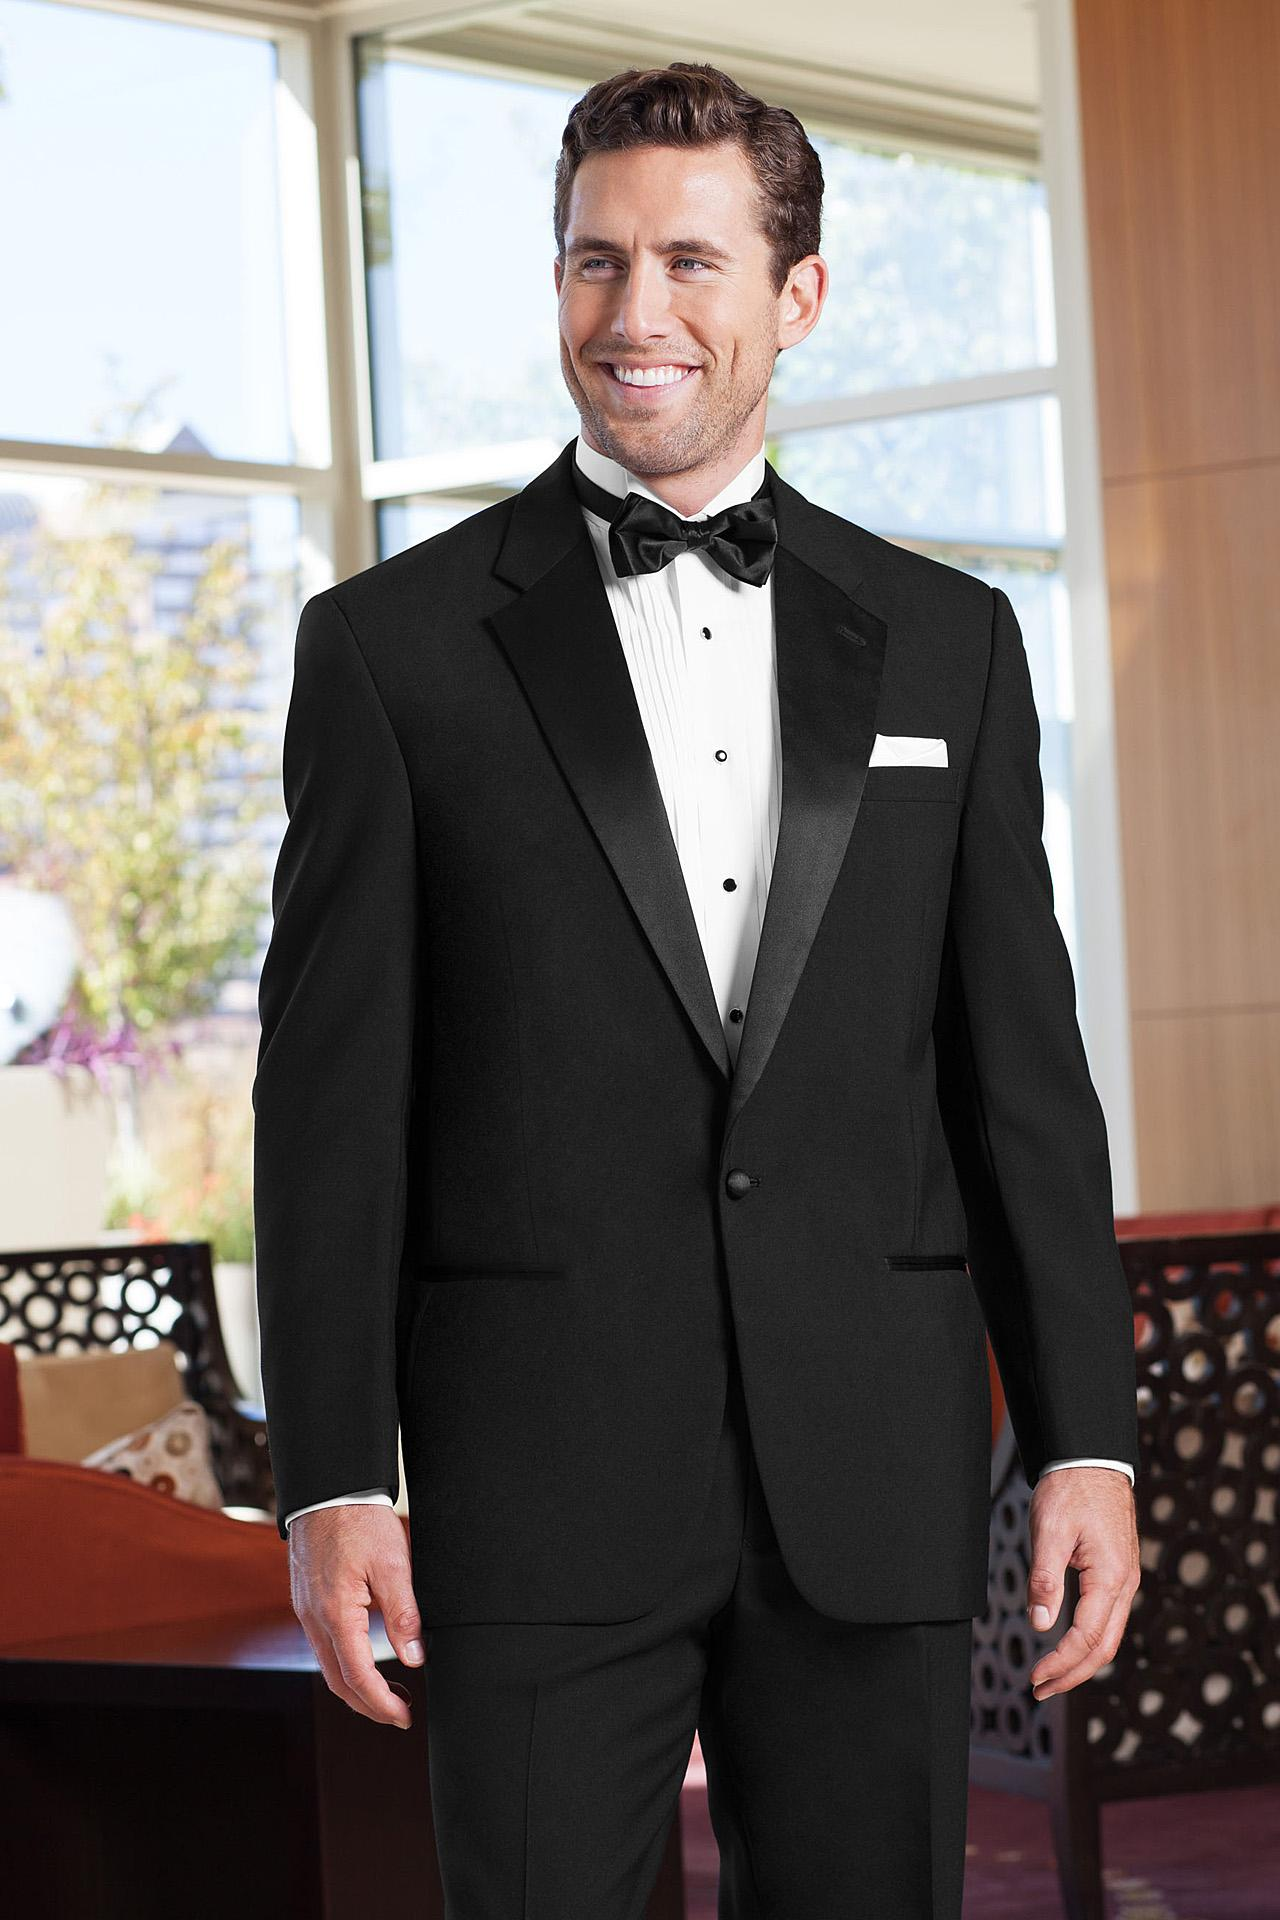 wedding-tuxedo-black-classic-notch-820-1 | The Flower Center